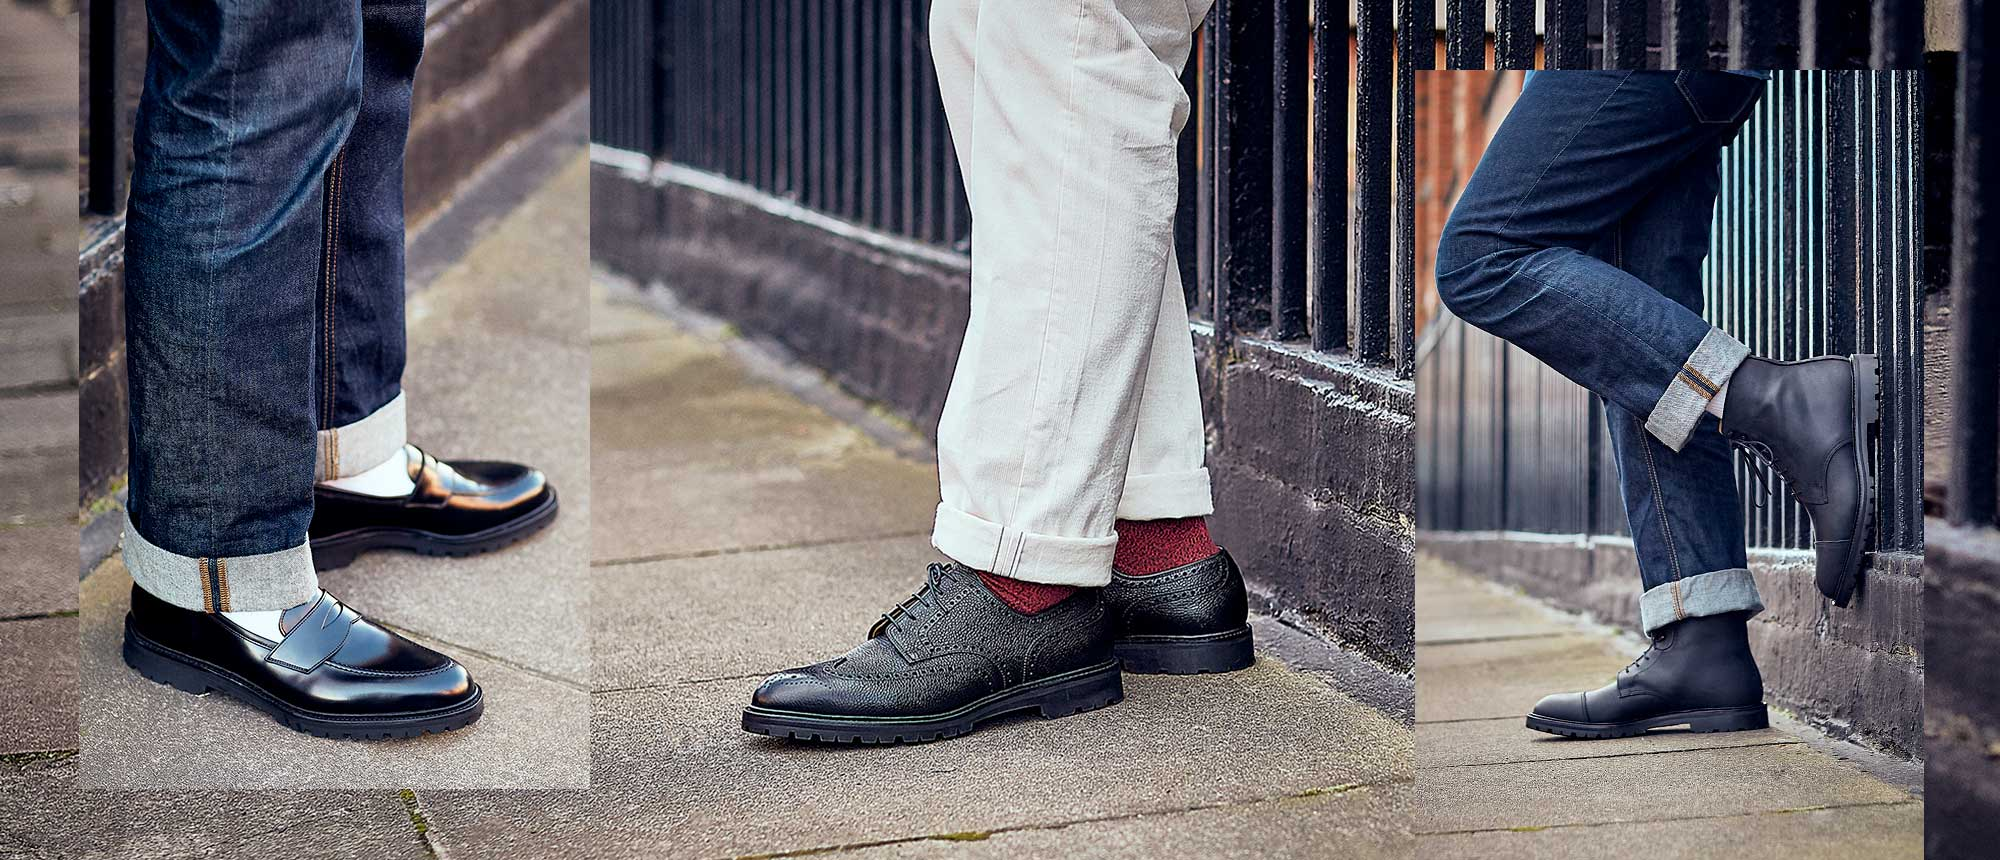 Crockett & Jones - Shoes and Style: The Black Editions